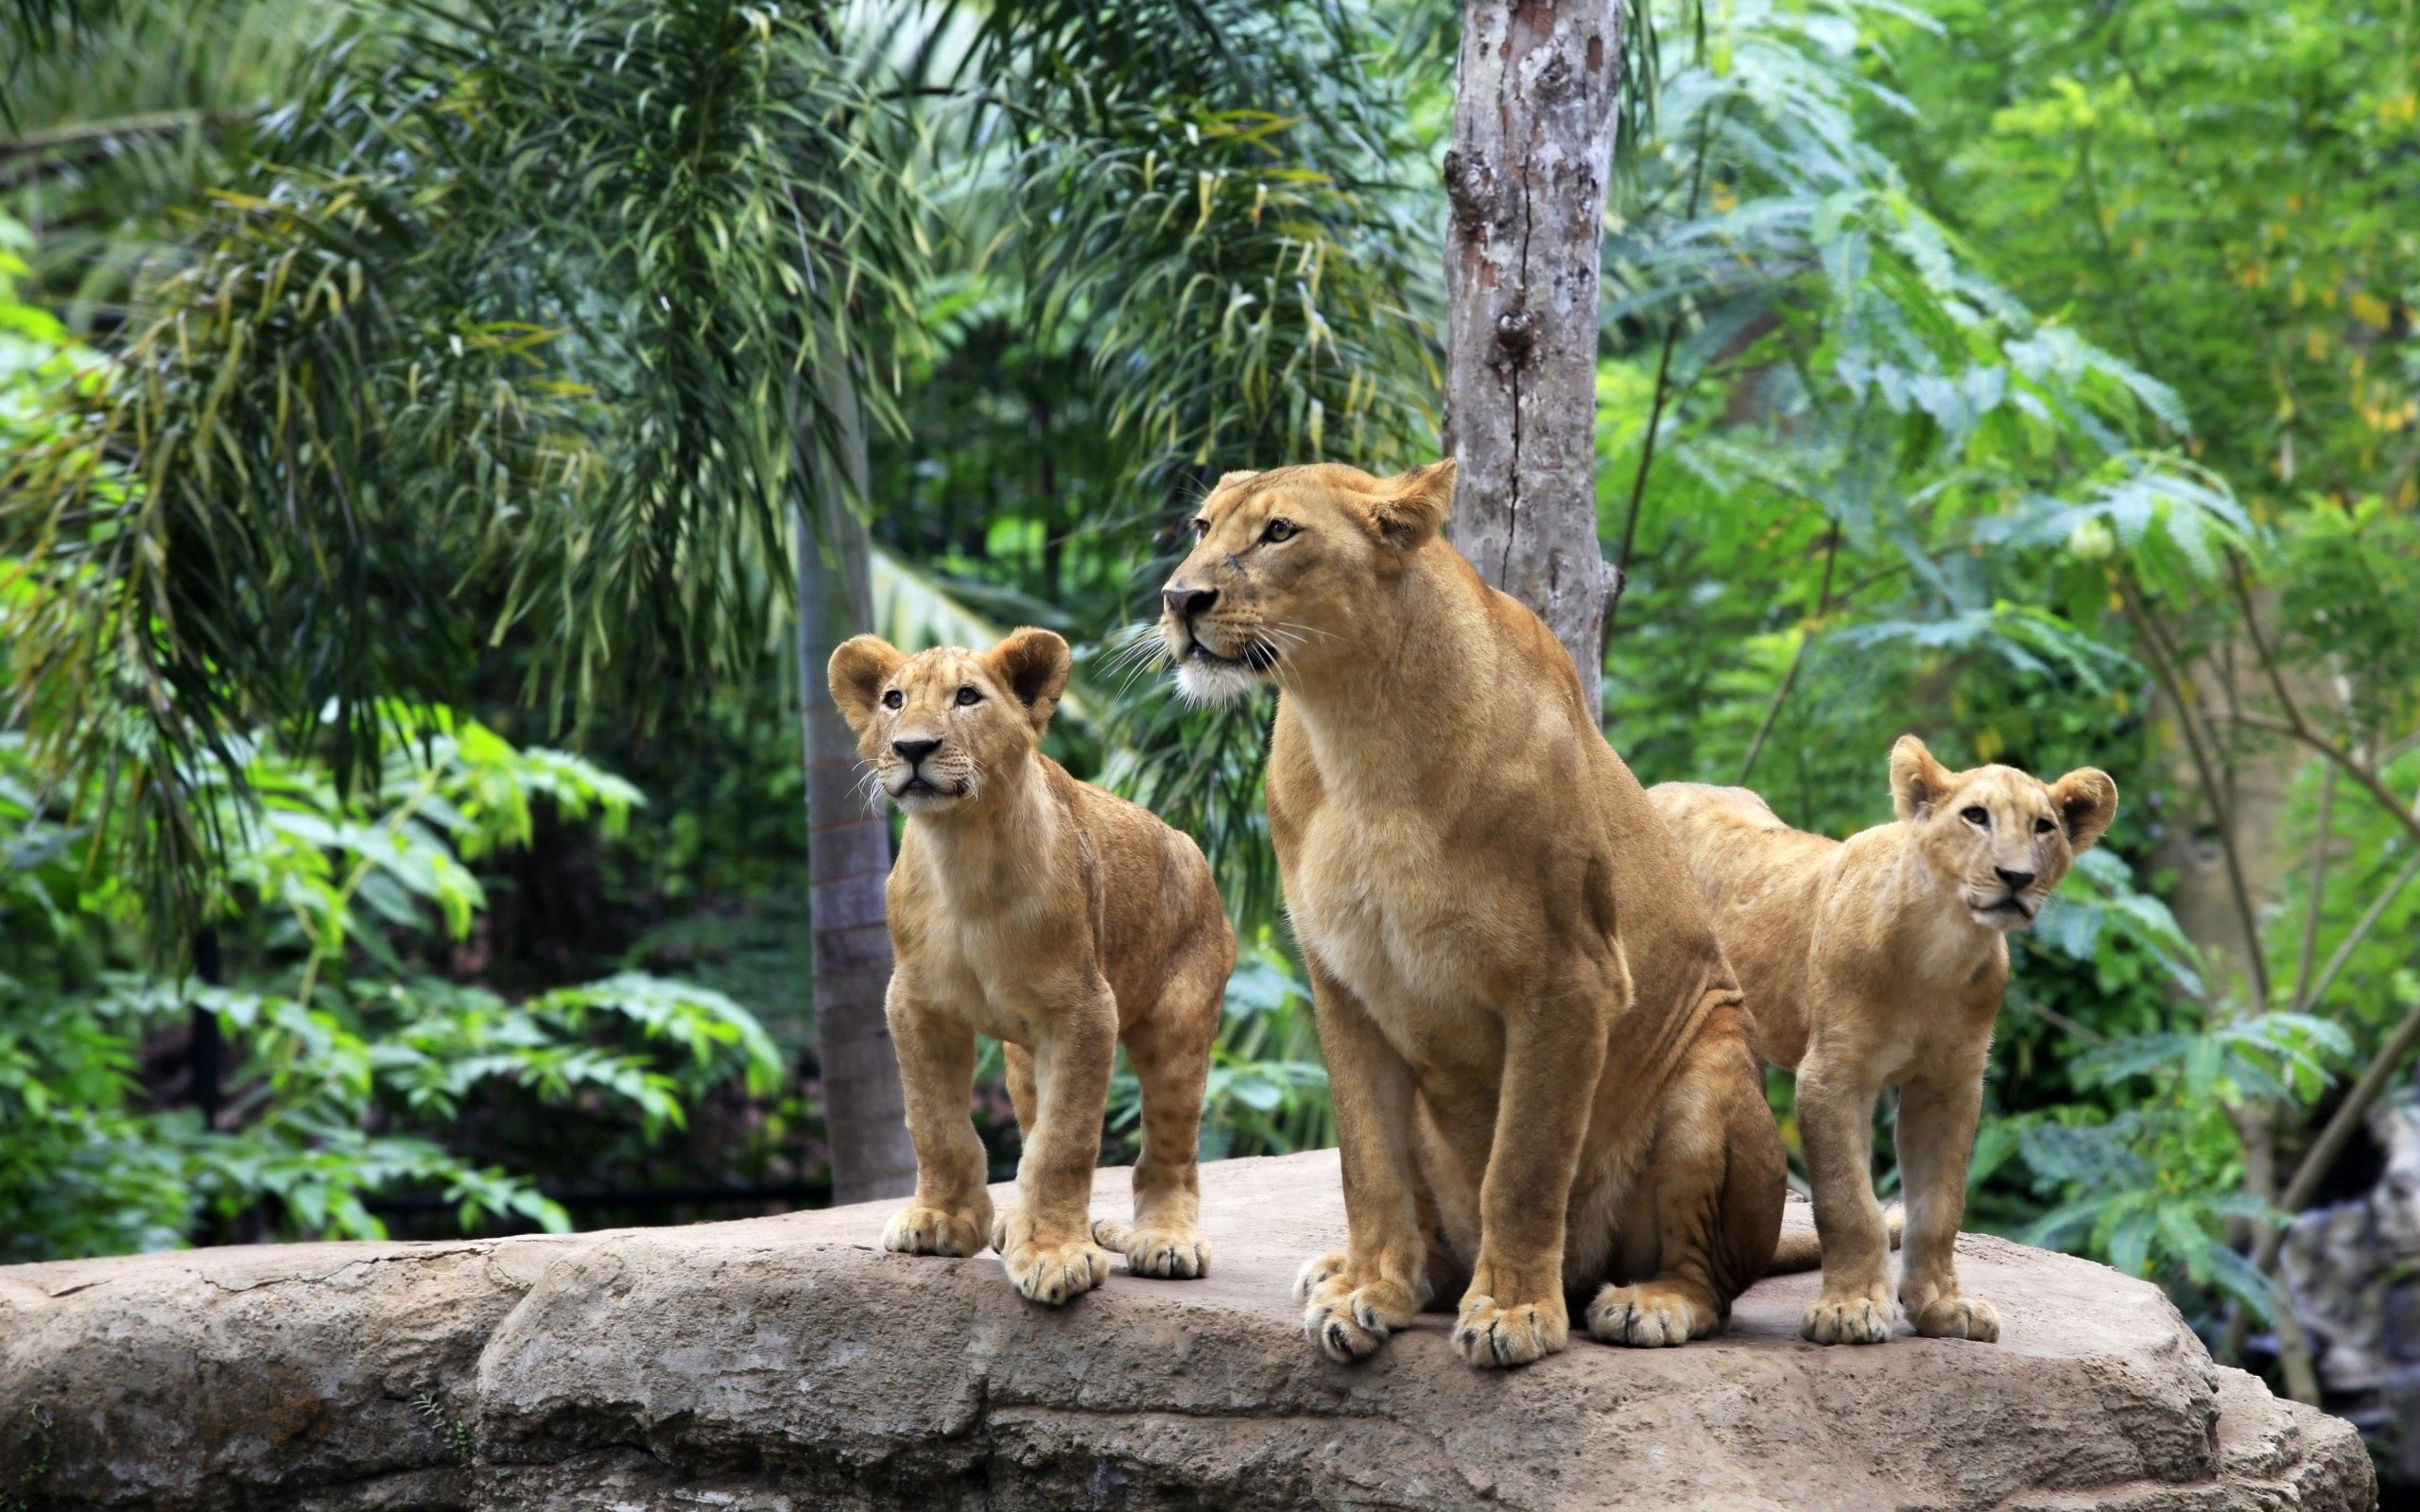 119511 download wallpaper Animals, Couple, Pair, Forest, Stones, Lions screensavers and pictures for free